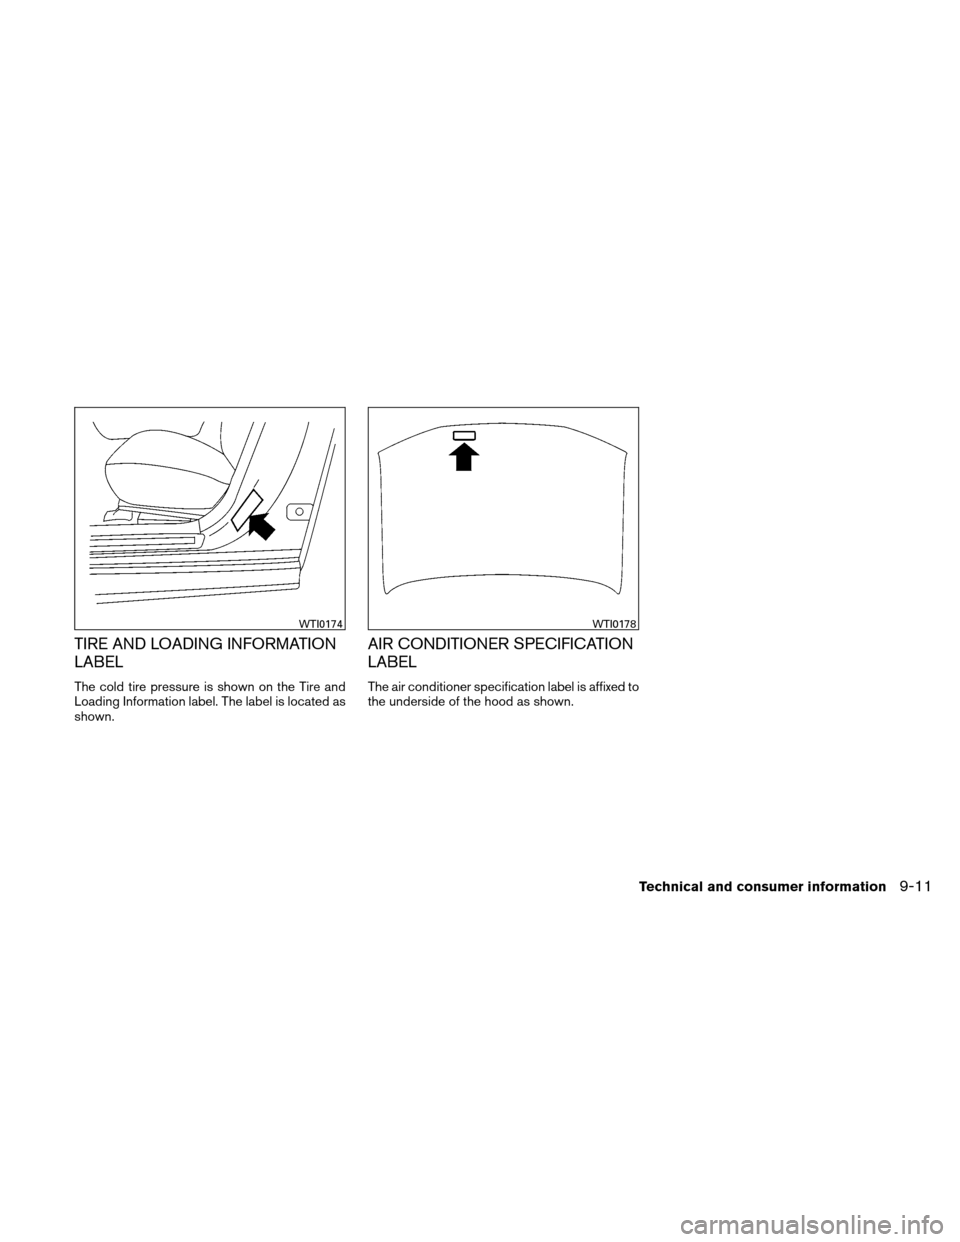 NISSAN ALTIMA HYBRID 2011 L32A / 4.G Owners Manual, Page 396